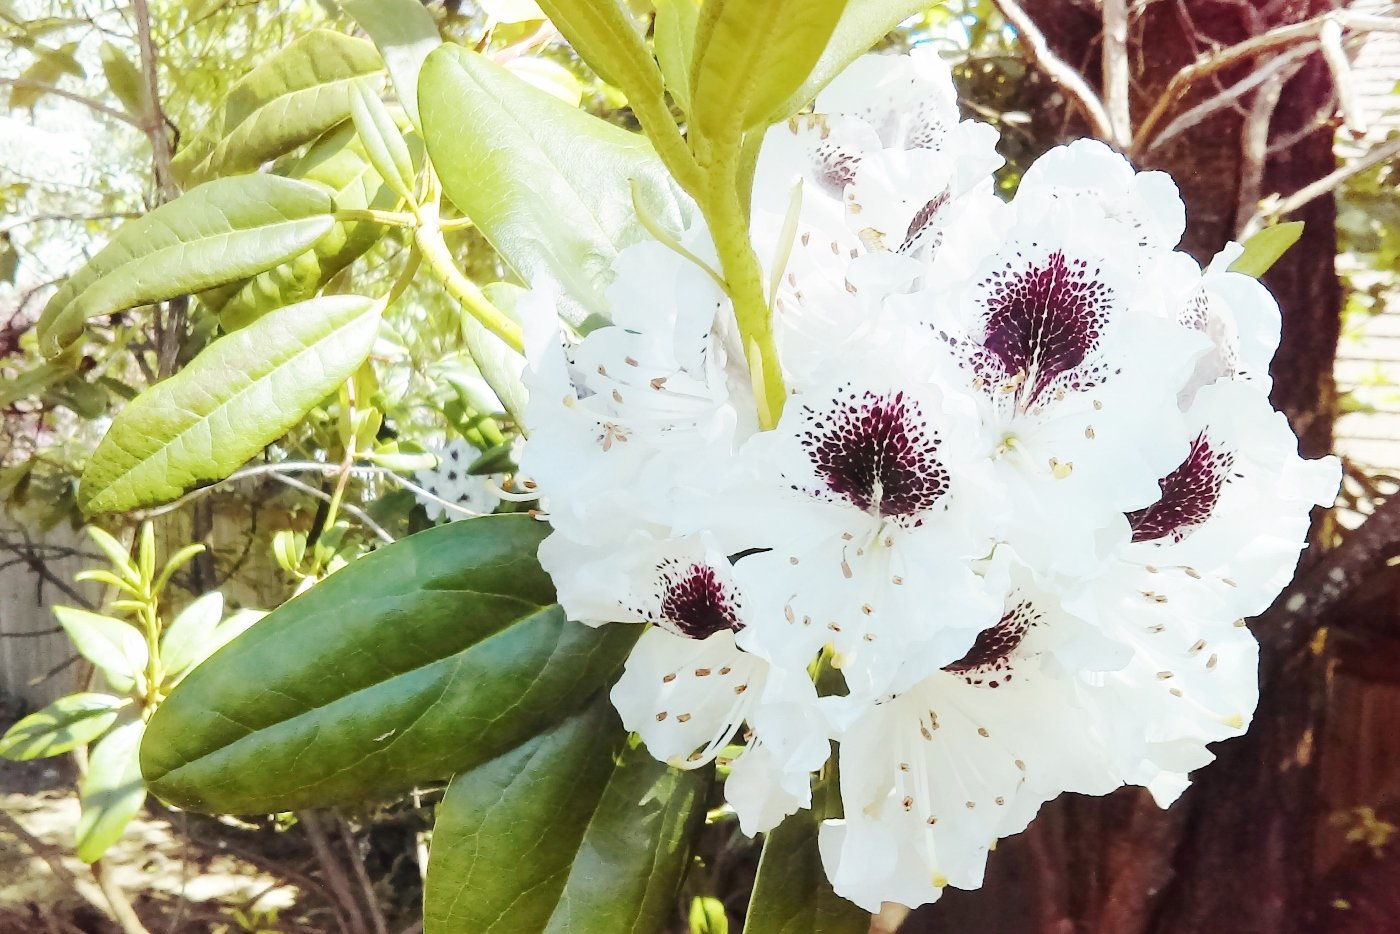 White and speckled rhododendron